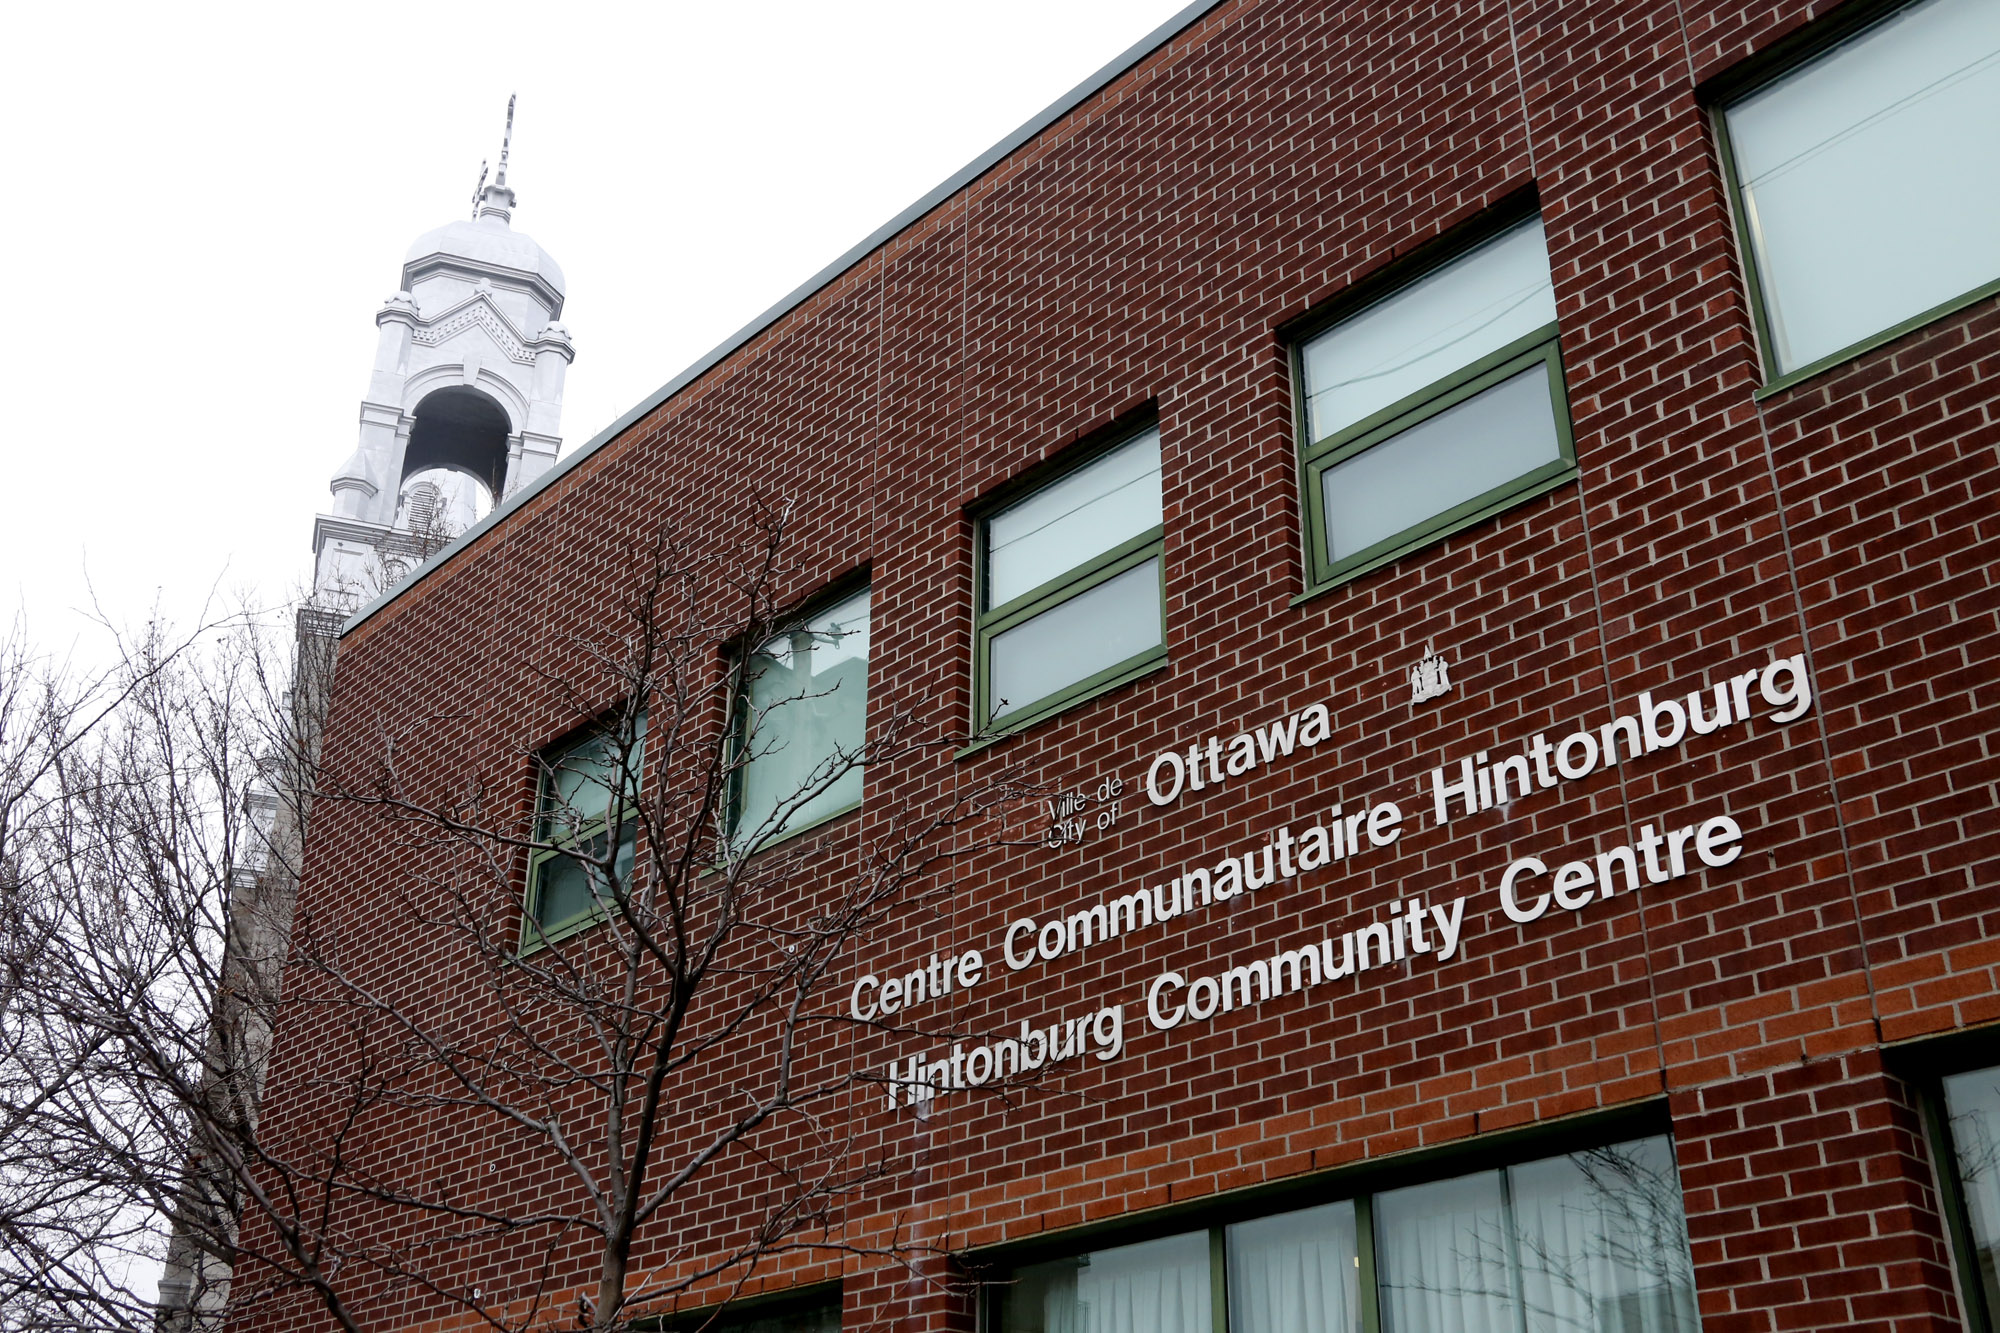 The Hintonburg Community Centre, located on Wellington Street West, next to the St. François d'Assise Church. Photo: Stephanie Elliott 2014.